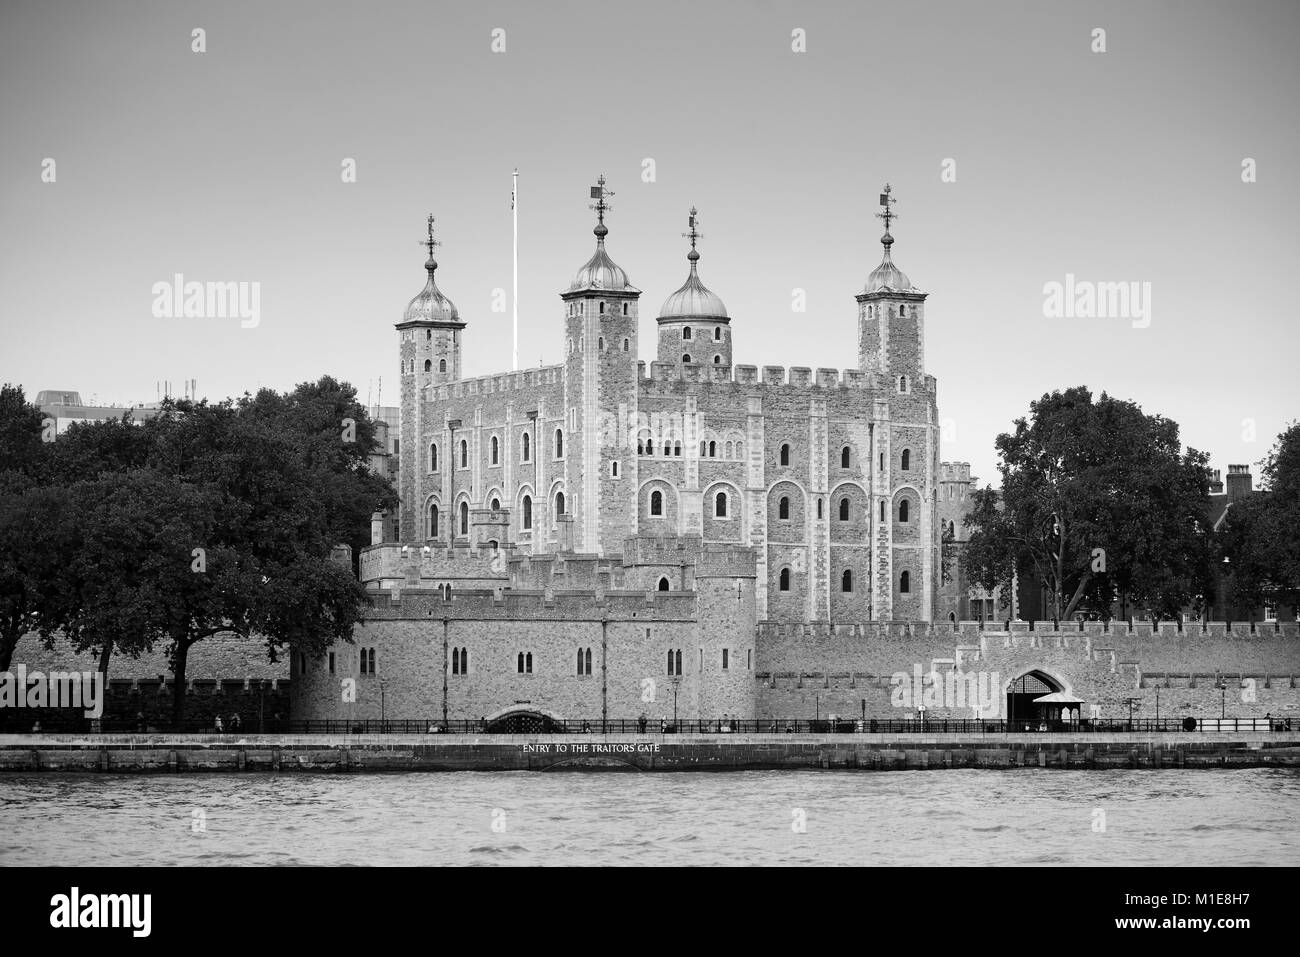 Historical building London Tower as the famous landmark in UK - Stock Image